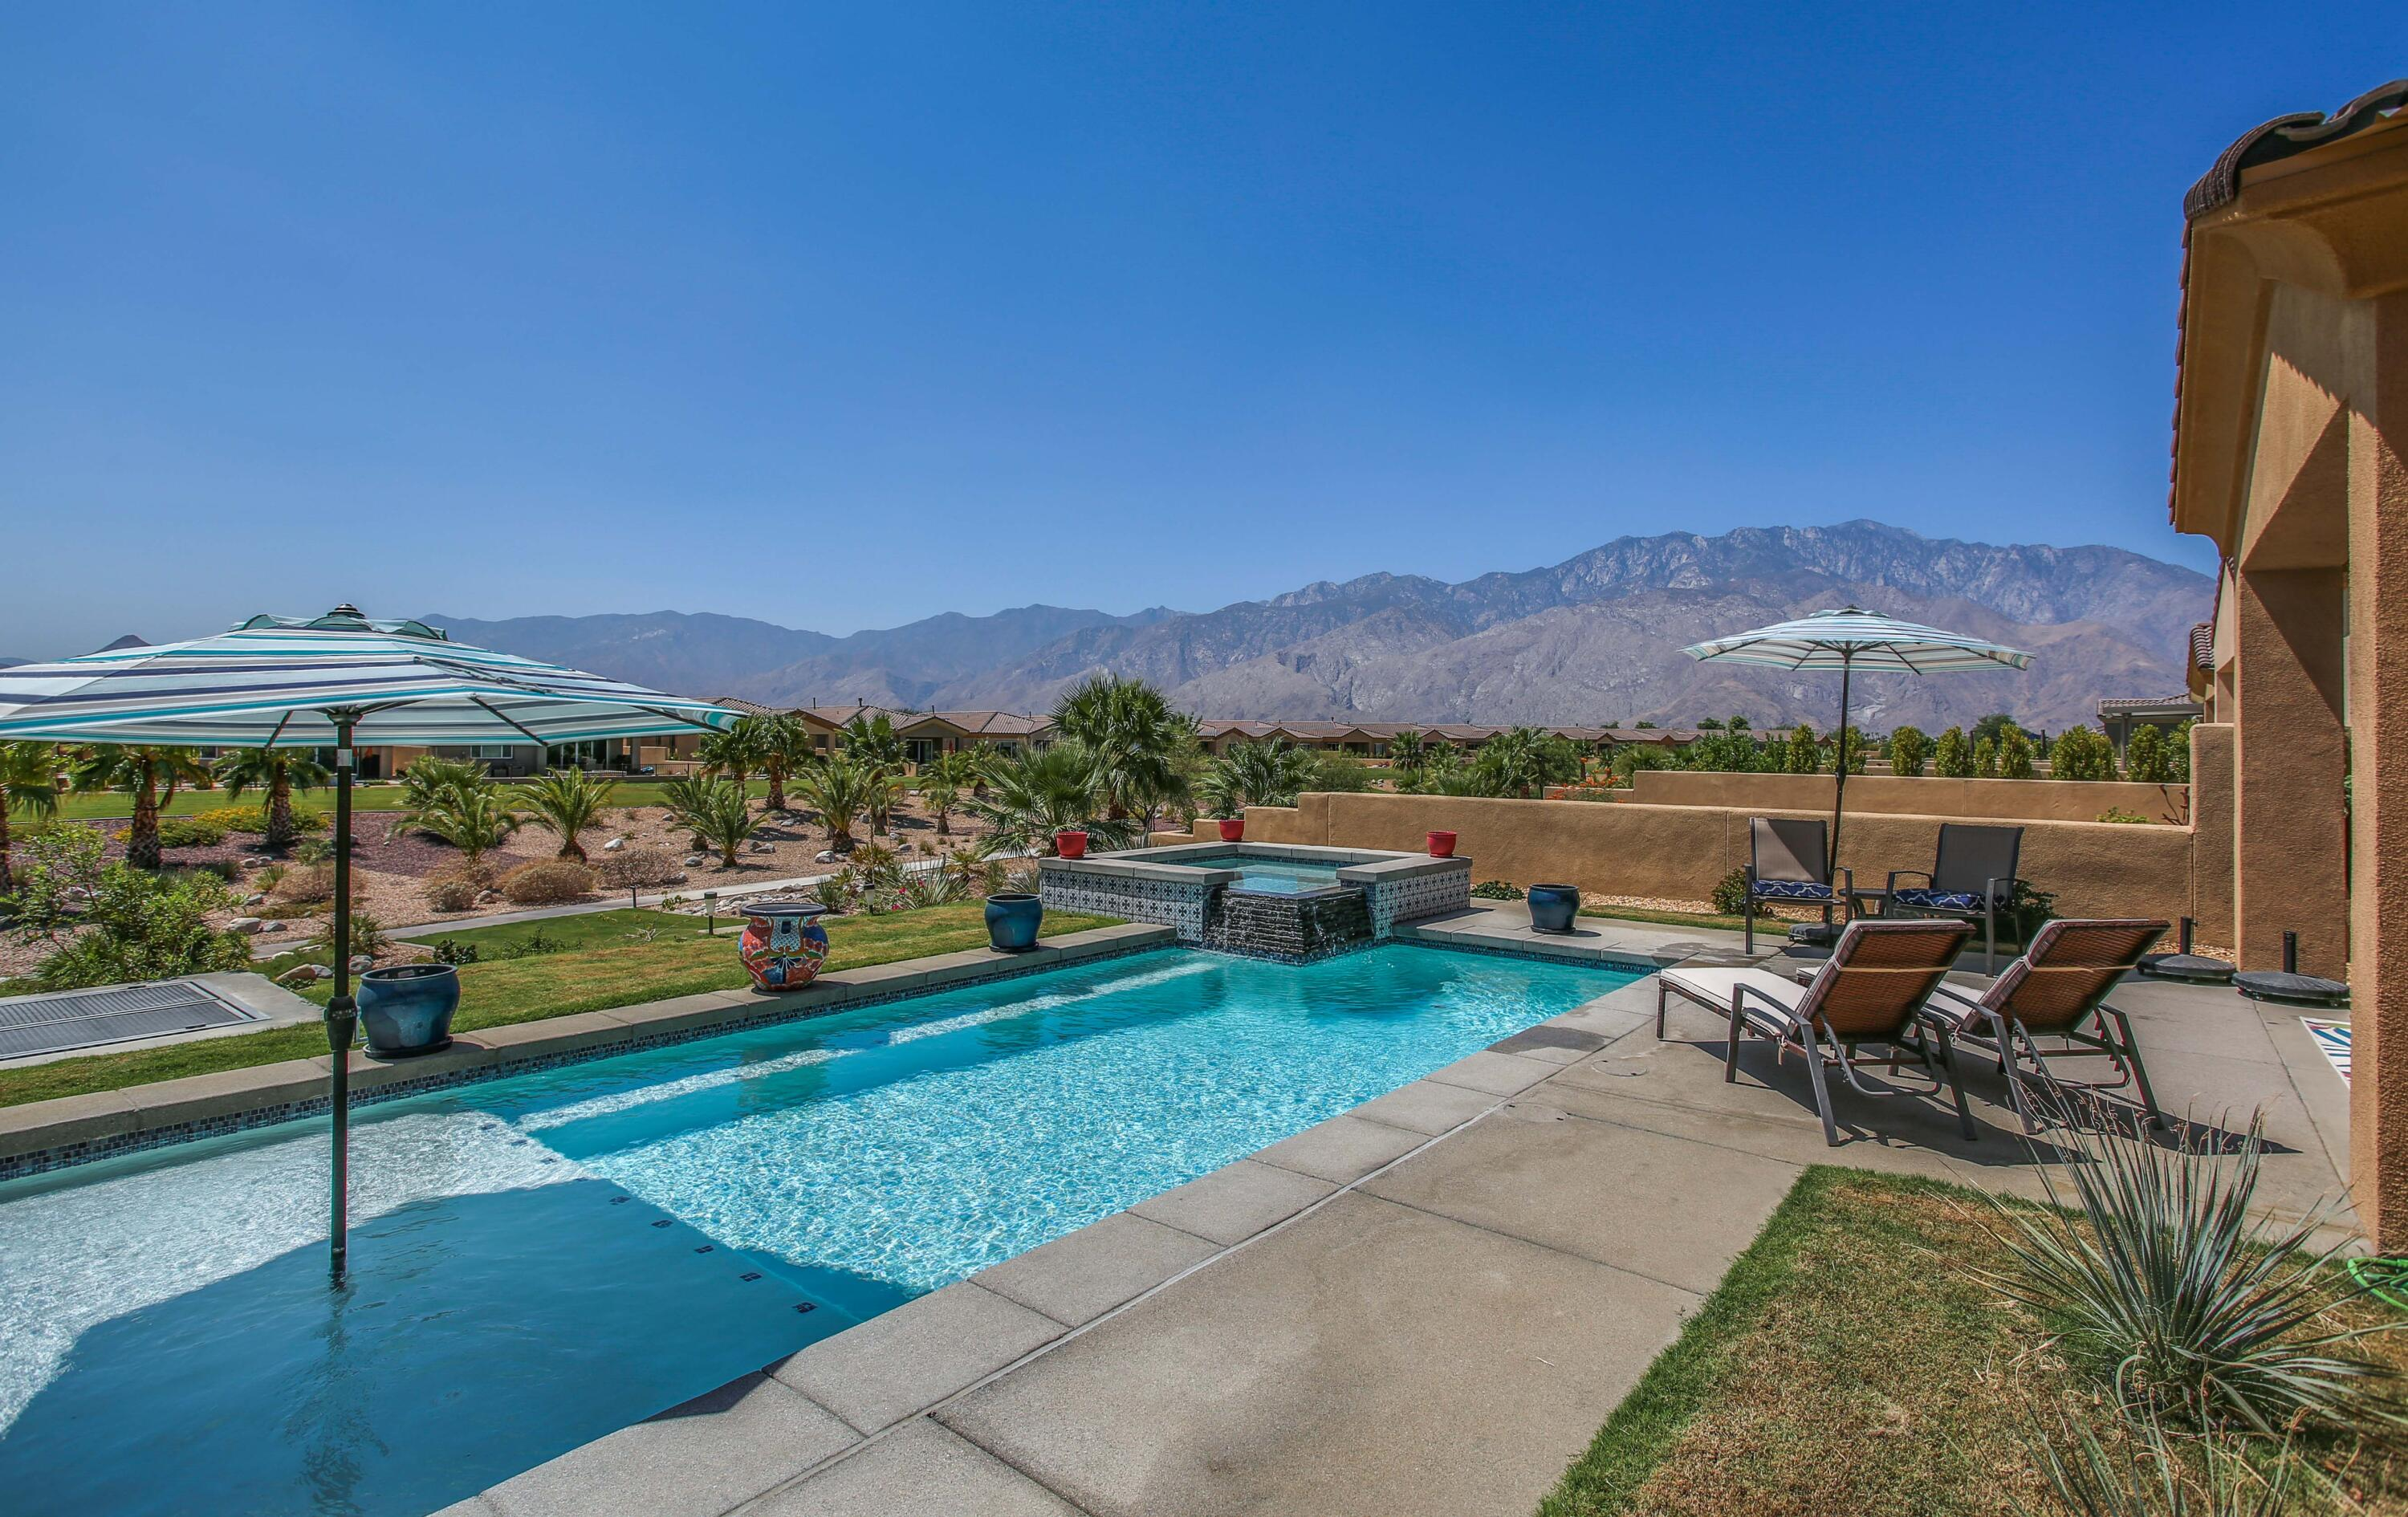 Breathtaking views of the incredible landscaping, framed by the majestic San Jacinto mountains. This open floor plan, turnkey furnished home features three bedrooms and two and a half bathrooms. Prepare a gourmet creation in the gorgeous, fully equipped kitchen that is open to the dining and living room.  There is a beautiful fireplace to enjoy your nights.  The master suite has 180-degree views of the mountain range and greens. The junior suite is quite spacious and connects to the third bedroom via a Jack and Jill bathroom on the opposite end of the home. Enjoy a cocktail by the south facing back yard with a salt water pool, stargaze while soaking in the hot tub or take a relaxing walk around the ¾ mile walking path located just off the back yard.  This home is a top income producing vacation rental property which has about $50,000 in rentals from Nov - April that could transfer to the buyer. Desert Princess Resort and Country Club is a guard gated community. The resort offers 27 holes of amazing golf, driving range, tennis, pickleball, racquetball, full-service spa, and a newly designed fitness center. All  owners have access to these amenities including the Clubhouse grill, bar, lounge, and dining room. Enjoy your own private salt water pool/hot tub or perhaps experience one of other 33 pools in the resort.  This home has amazing views from this premium lot.